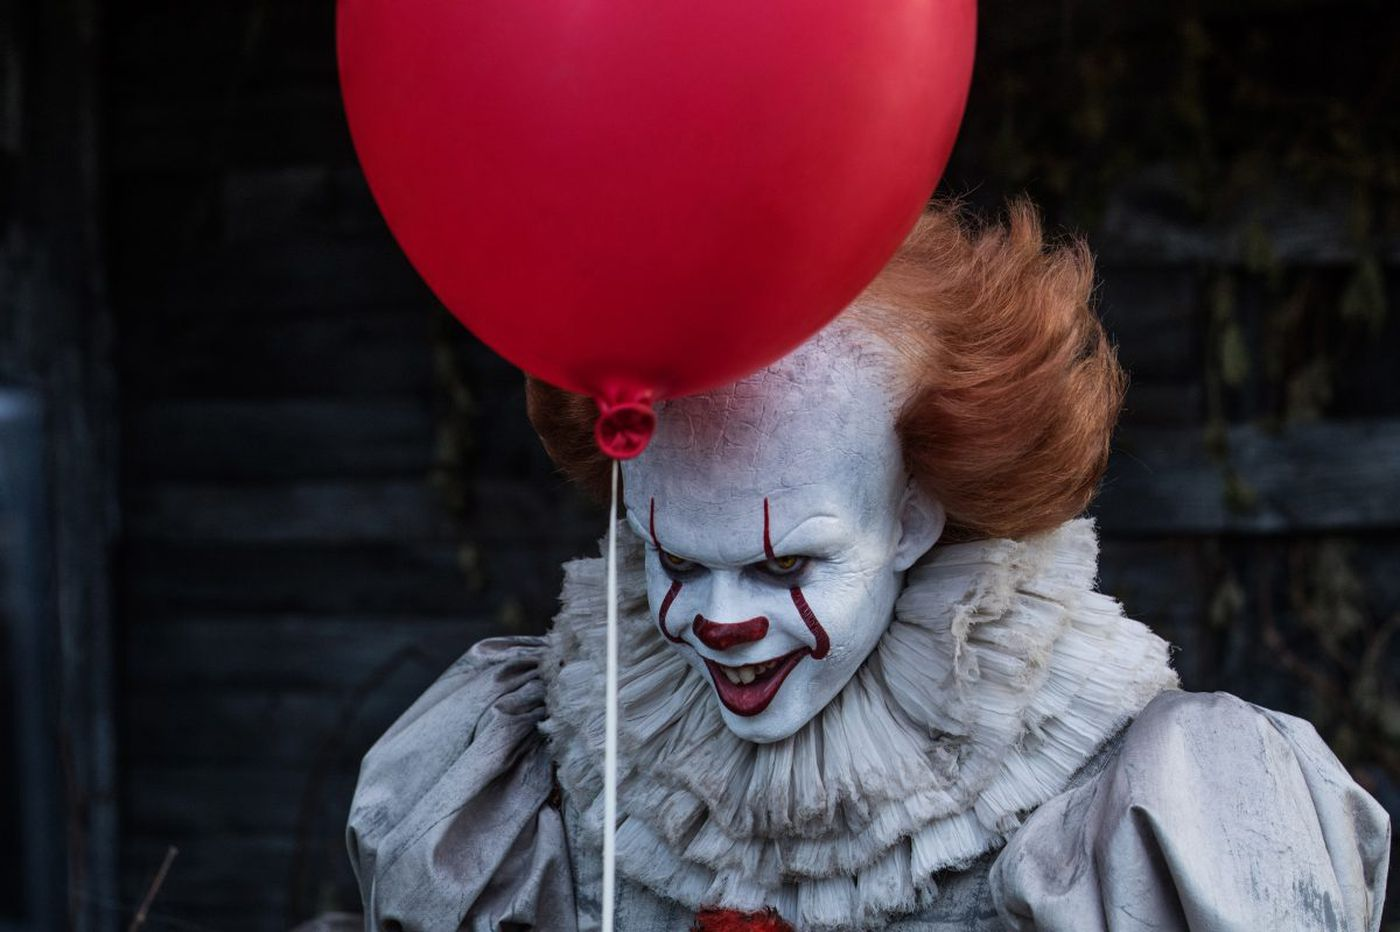 For a movie about a sewer clown, 'It' is not exactly flush with terror